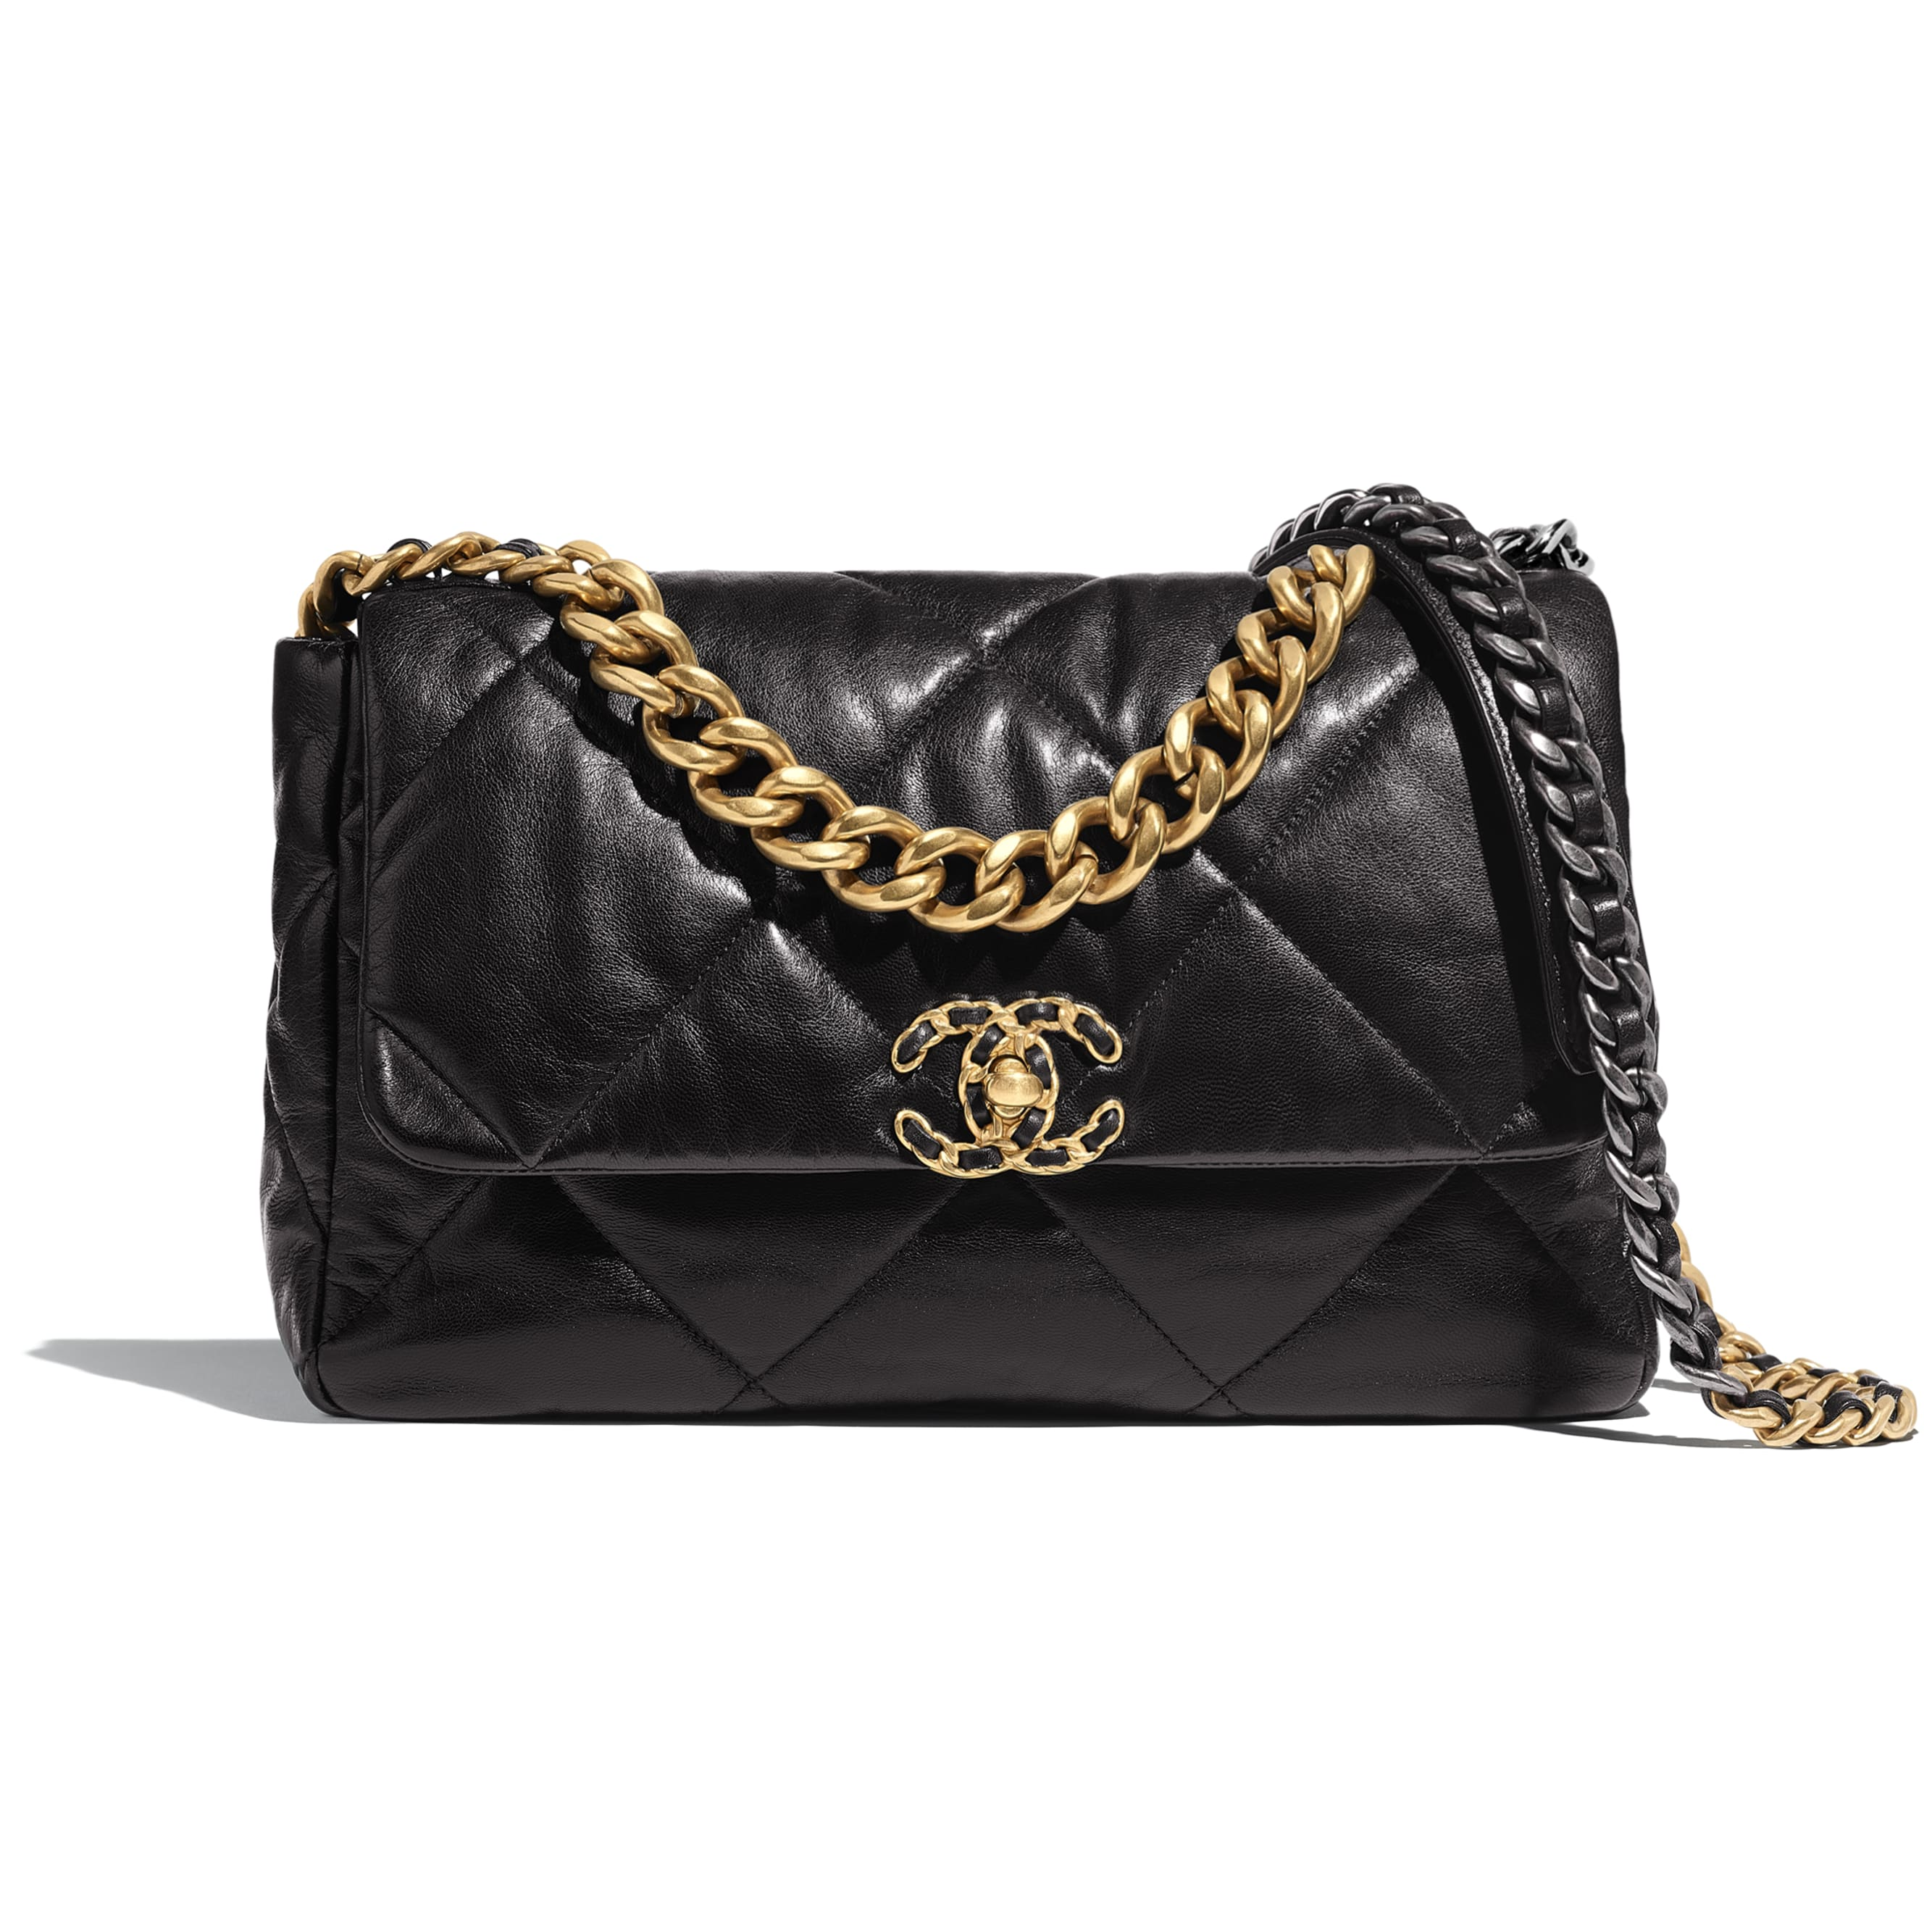 CHANEL 19 Large Flap Bag - Black - Lambskin, Gold-Tone, Silver-Tone & Ruthenium-Finish Metal - CHANEL - Default view - see standard sized version